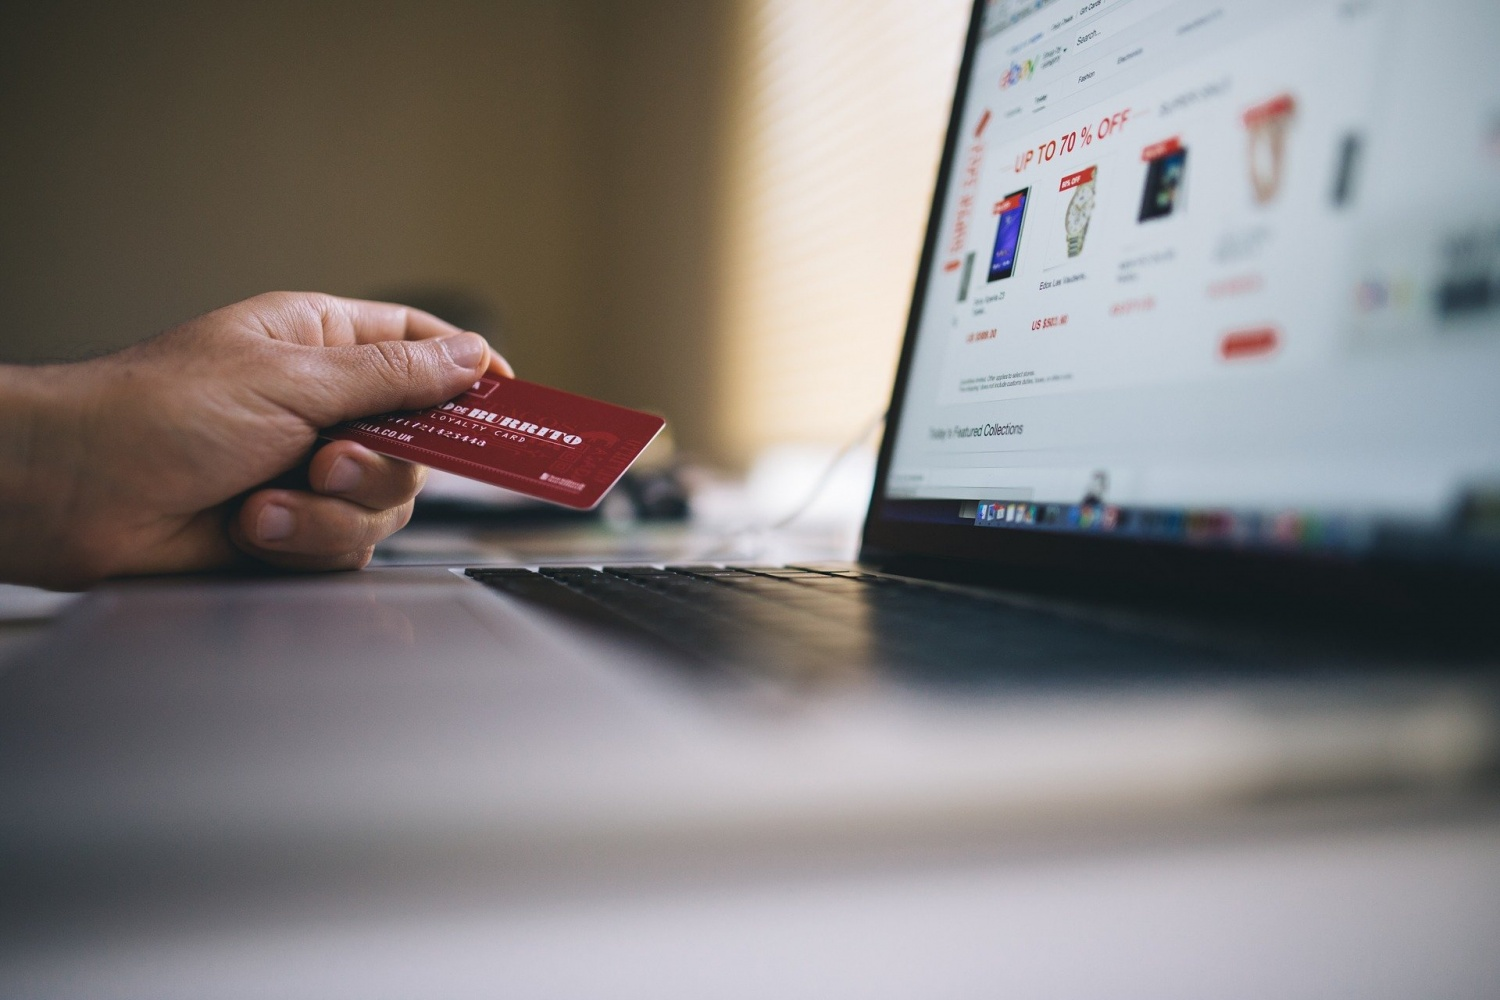 Top 8 Online Shopping Trends